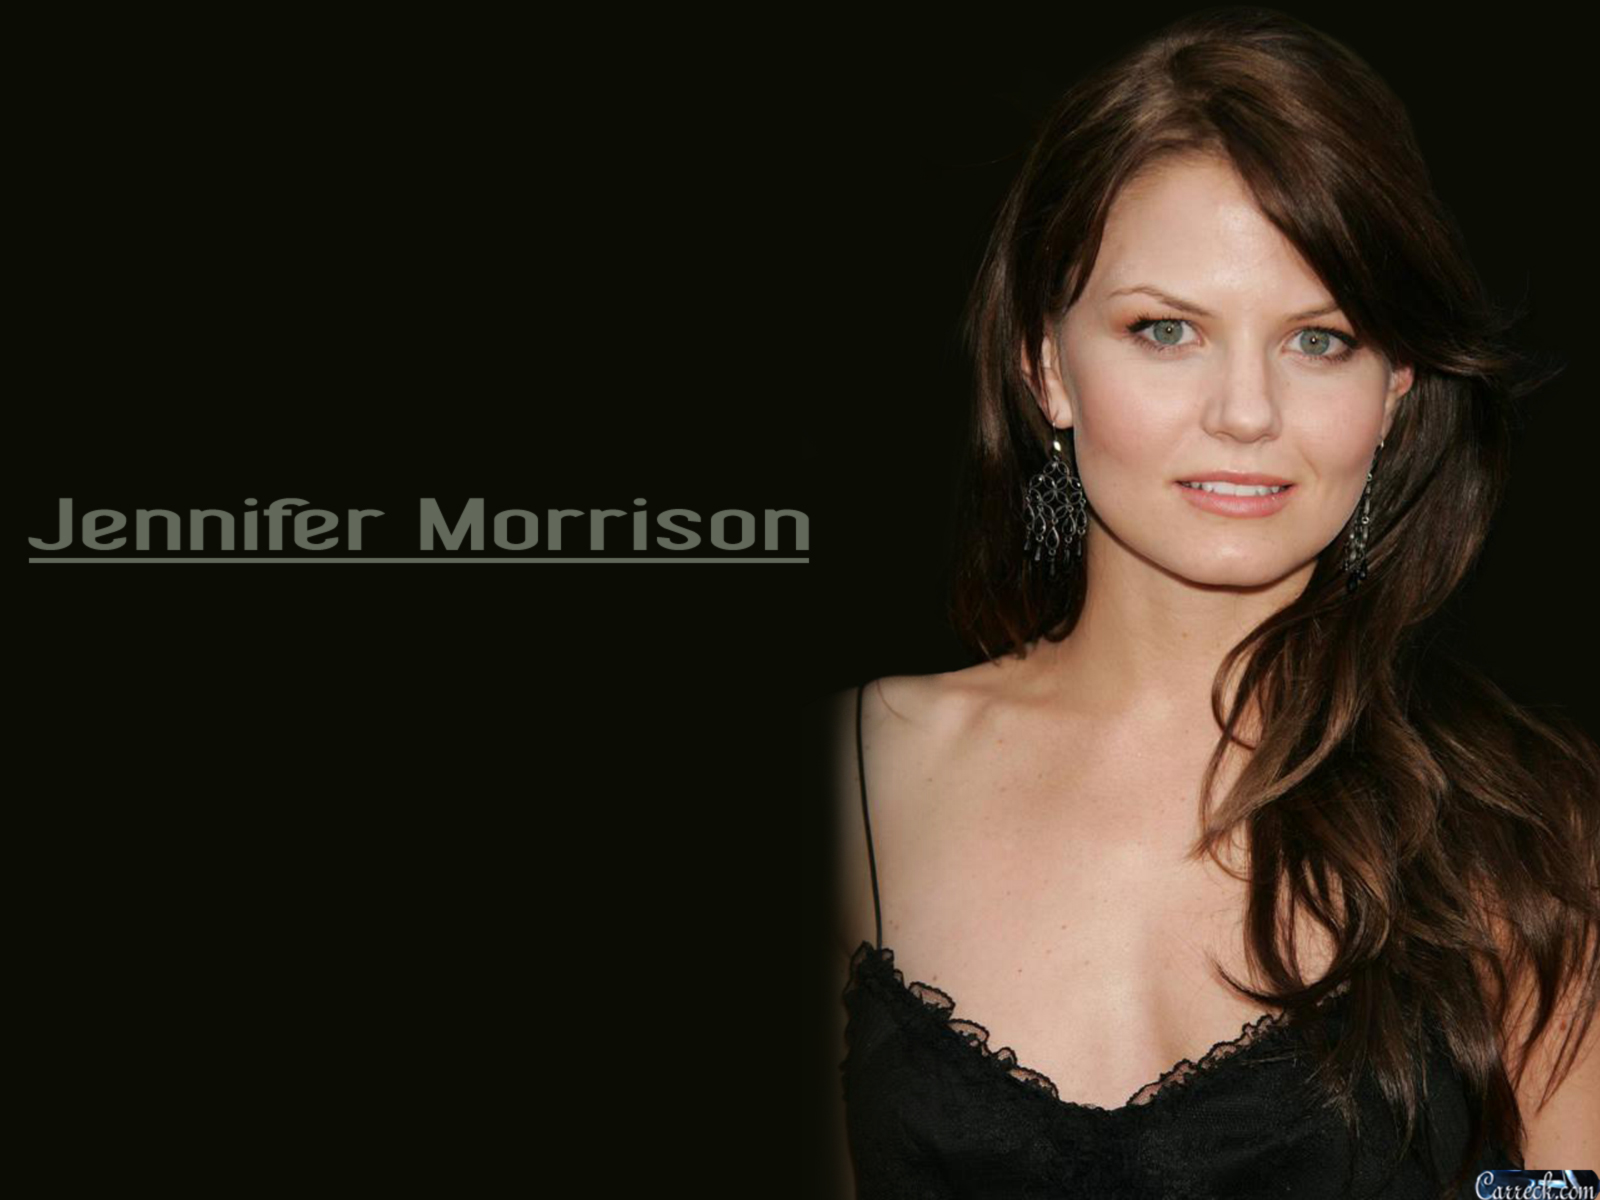 Jennifer Morrison Wallpapers High Quality  Download Free 1600x1200